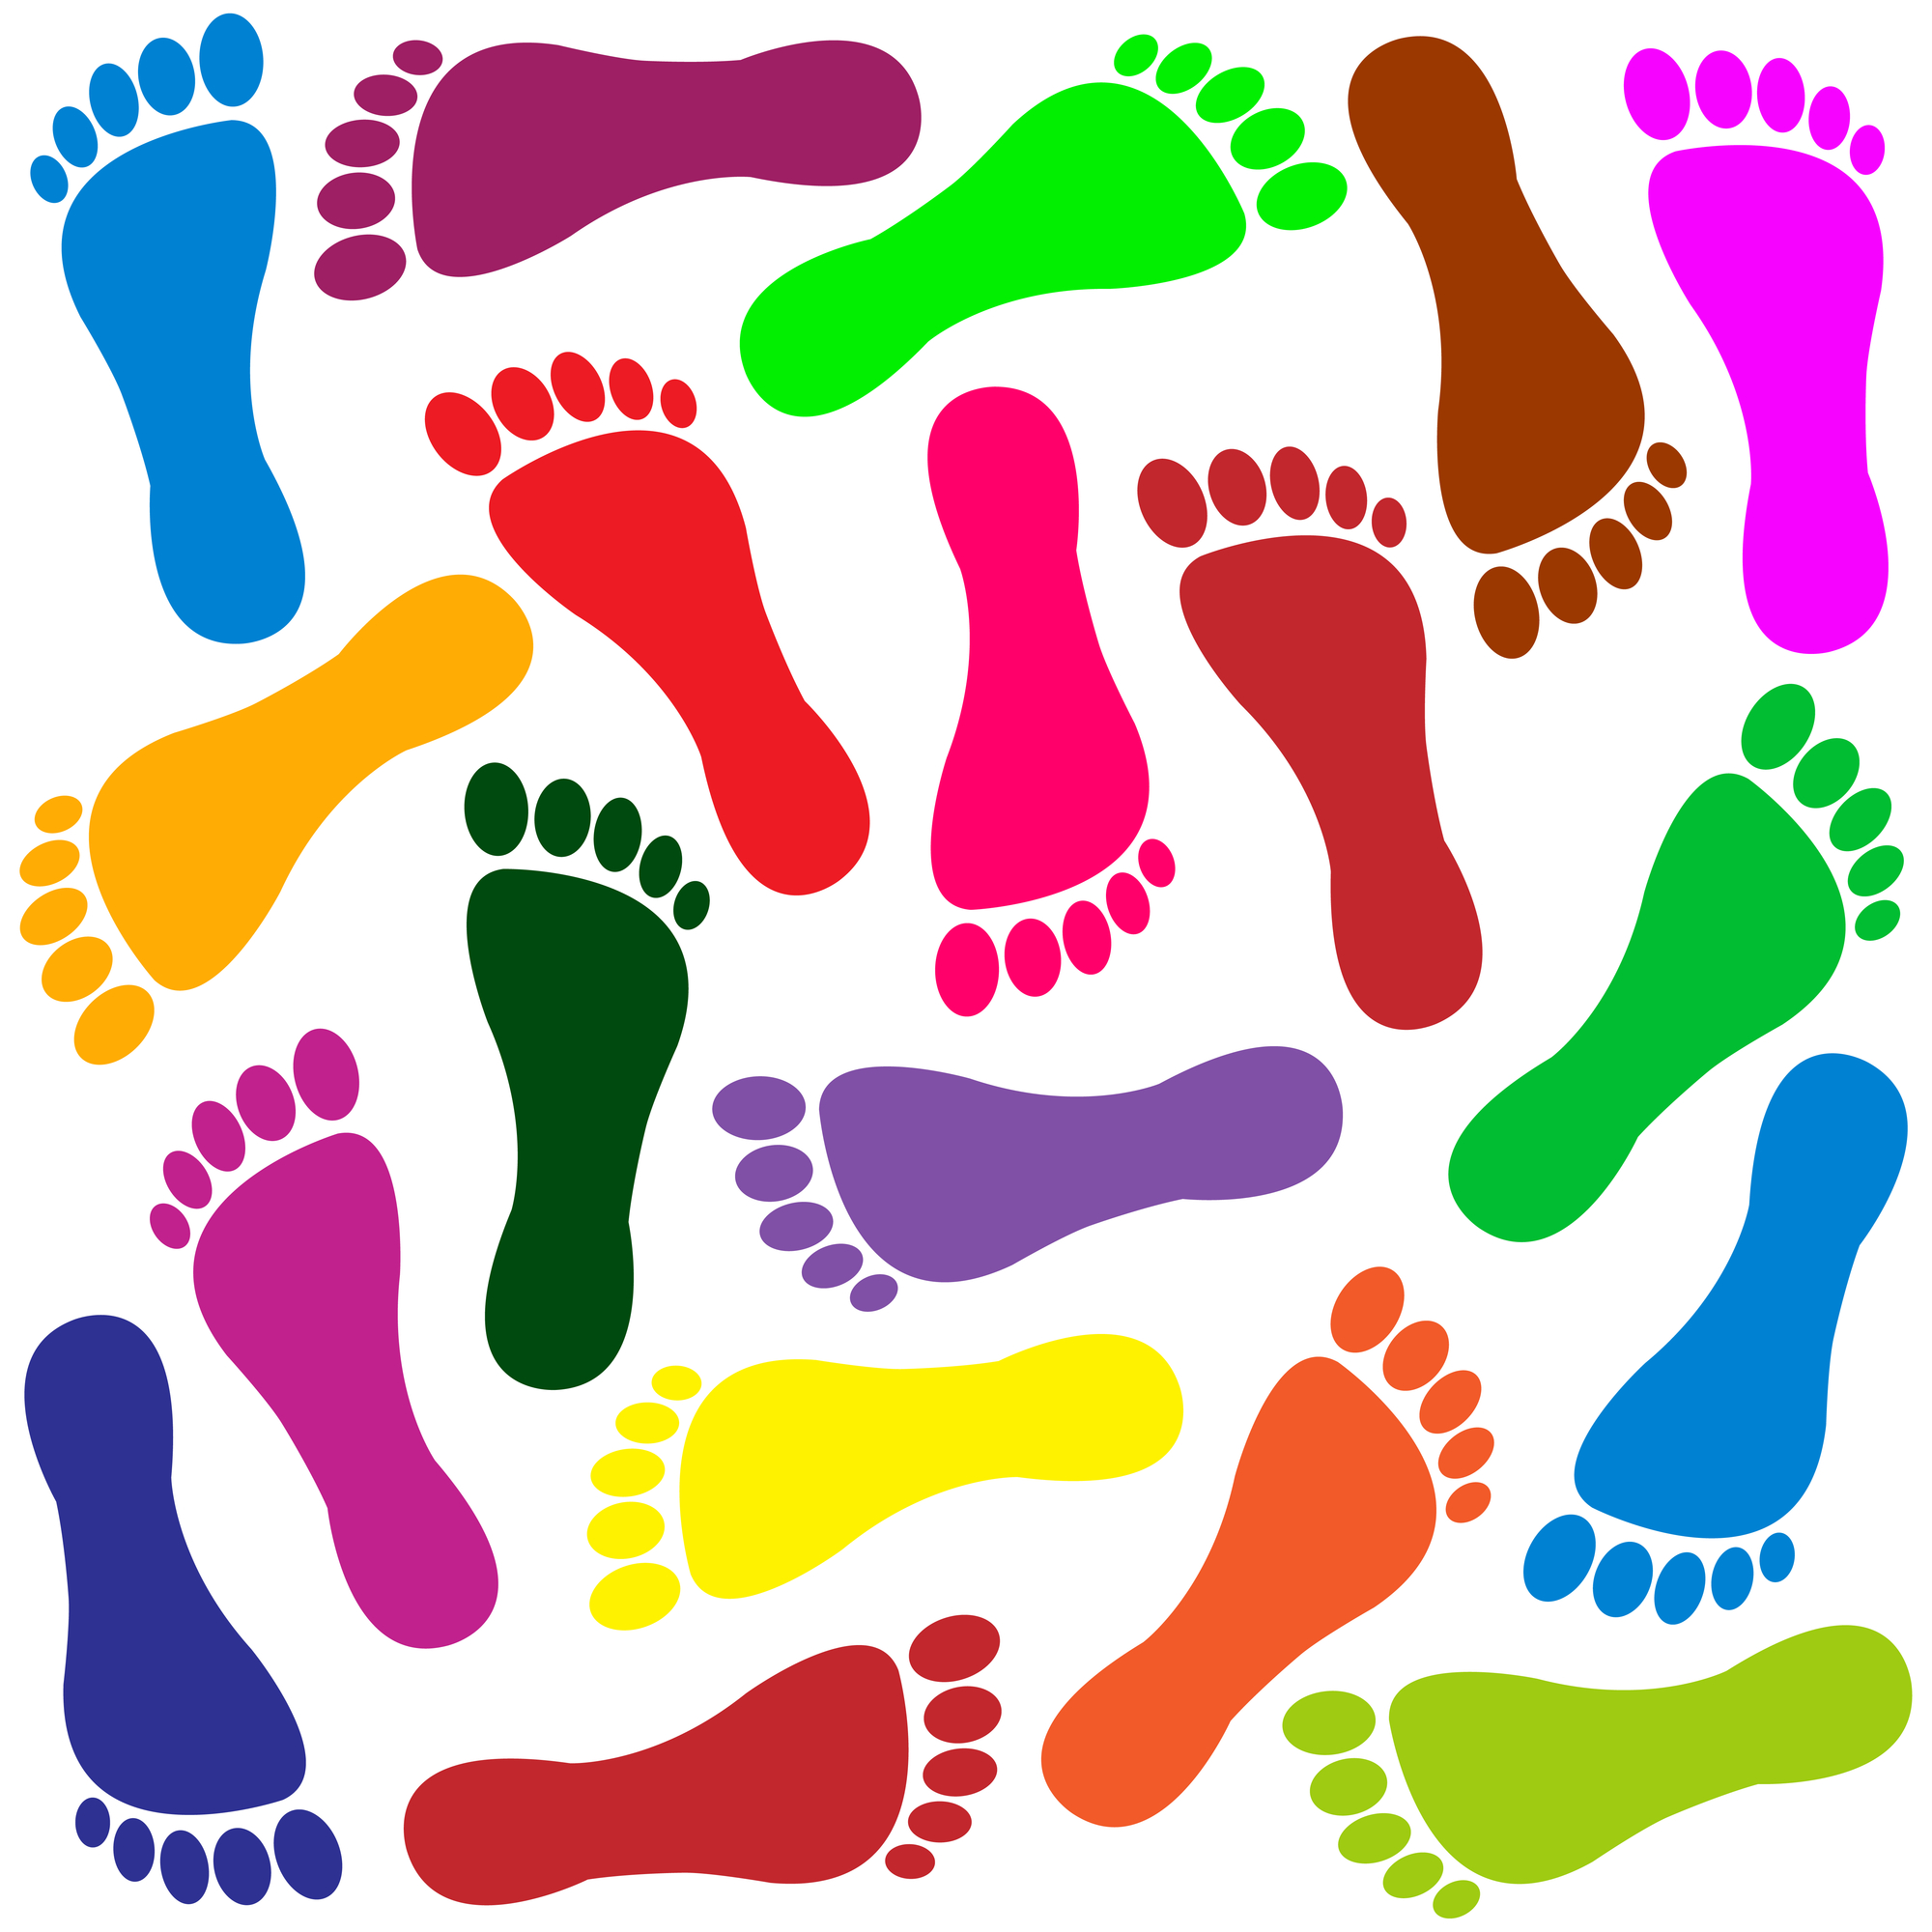 Colourful image of many different footprints